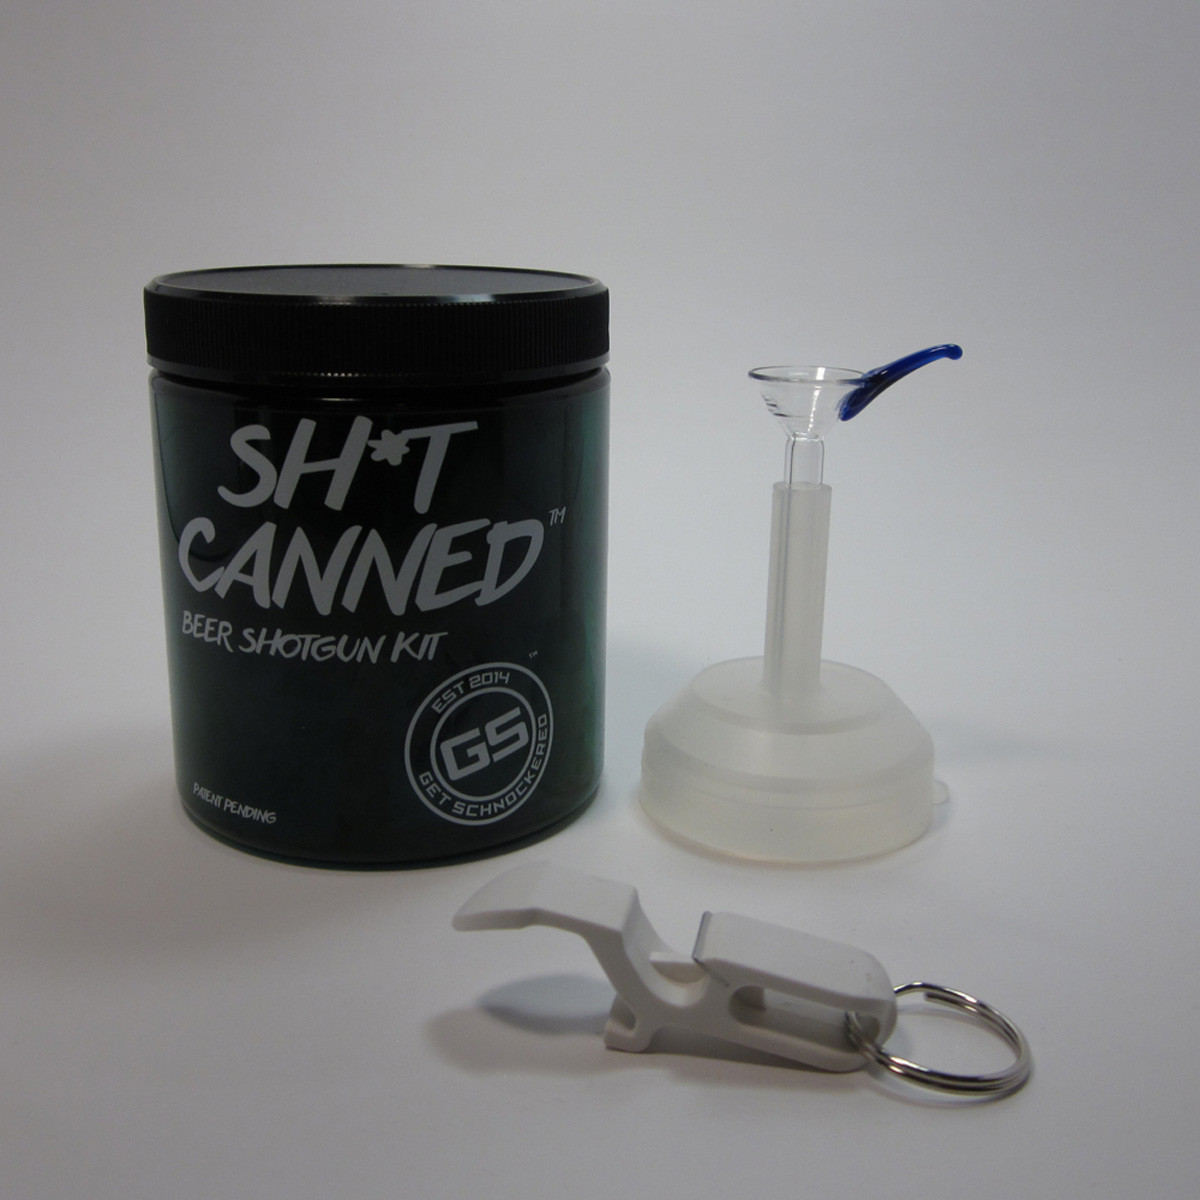 Sh!t-Canned